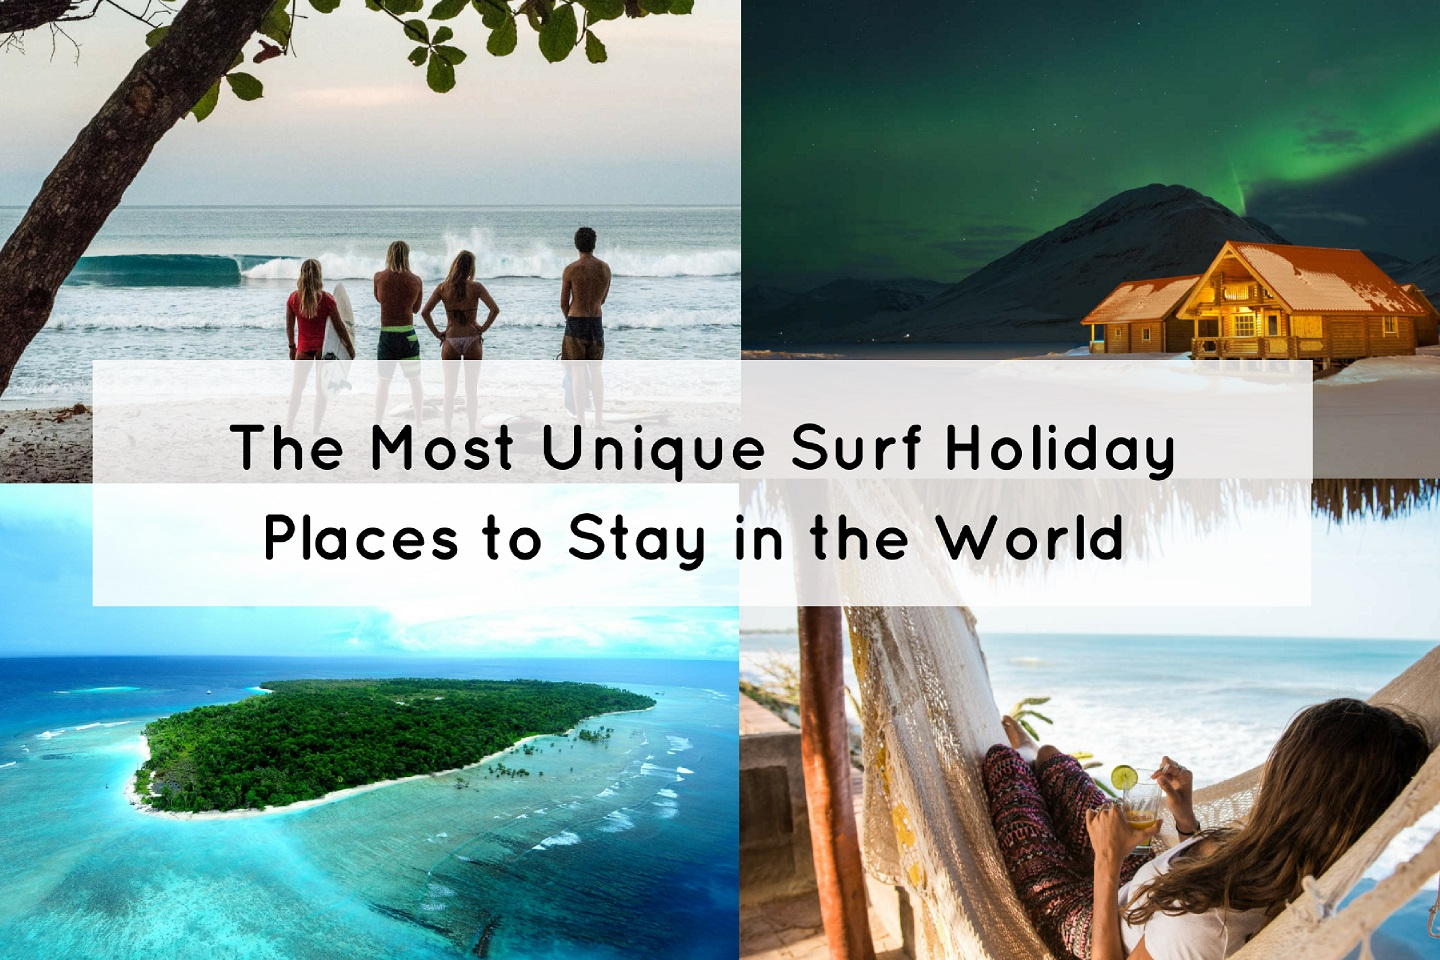 10 Of The Most Unique Surf Holiday Places to Stay In The World